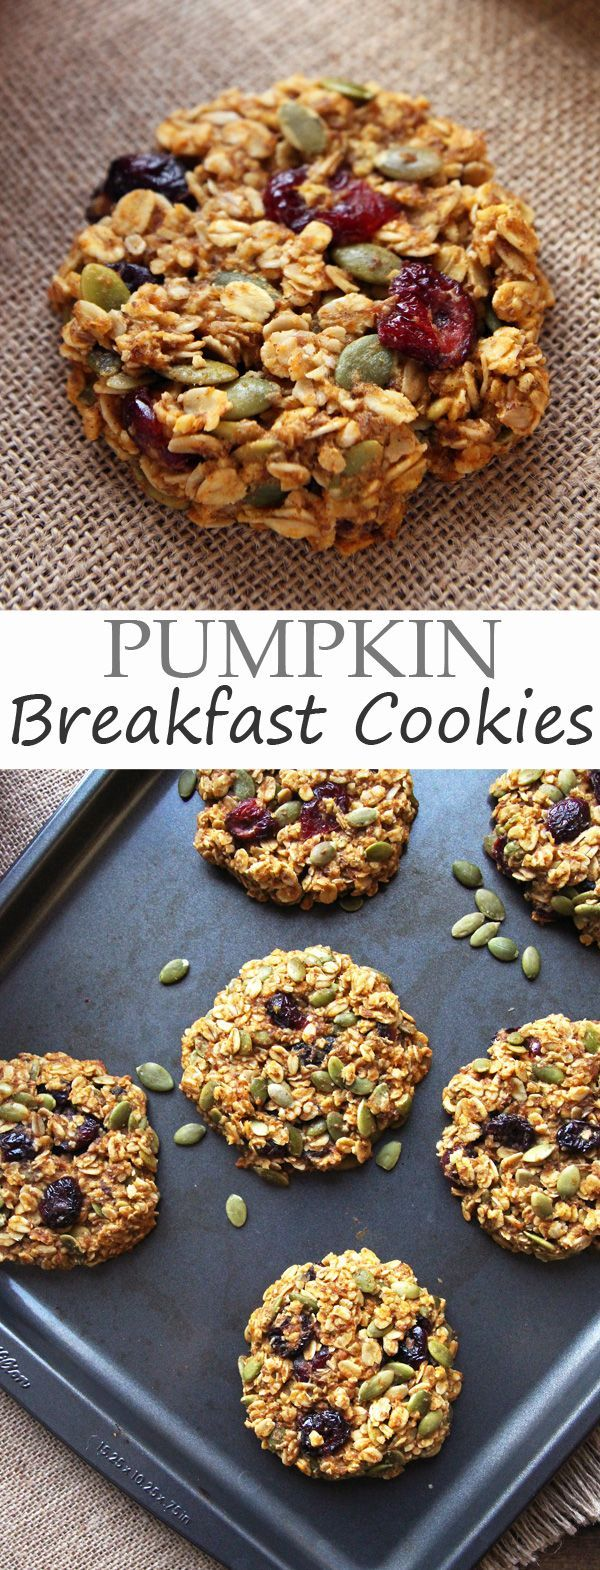 Pumpkin Breakfast Cookies drive home the fall flavor with pumpkin seeds and dried cranberries. They are GF, refined sugar-free: Pumpkin Breakfast Cookies drive home the fall flavor with pumpkin seeds and dried cranberries. They are GF, refined sugar-free